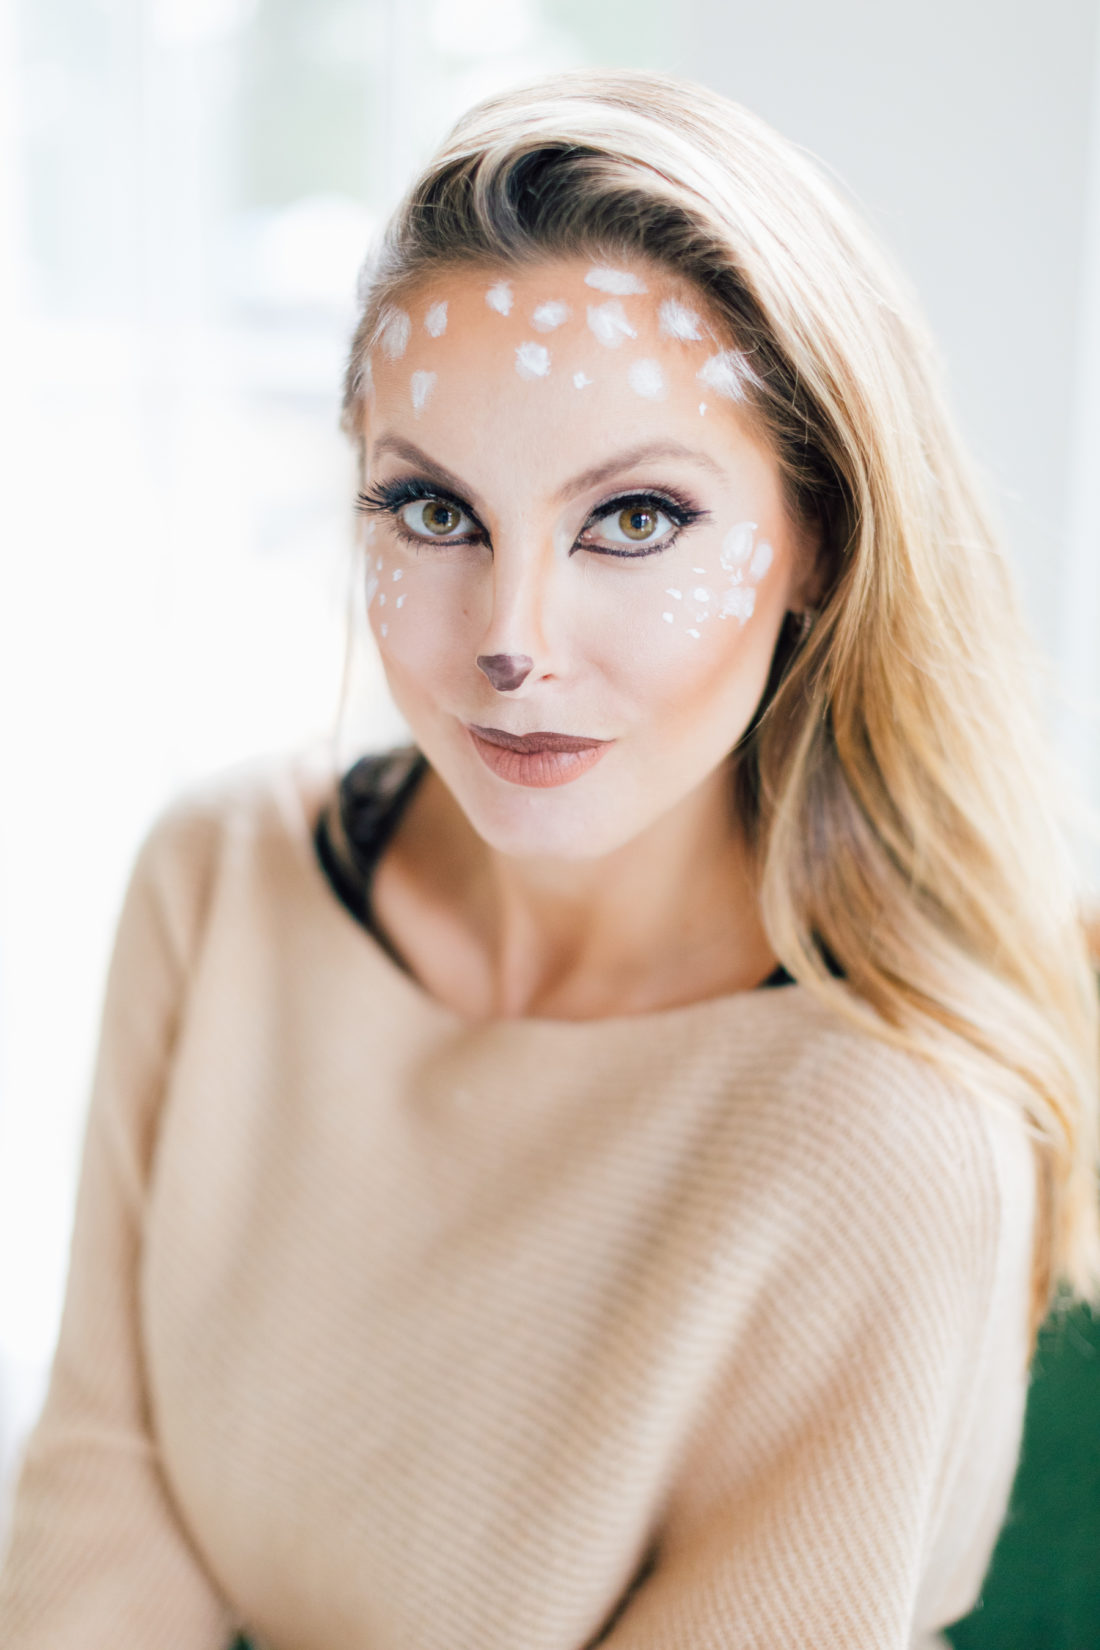 Eva Amurri Martino shares two easy Halloween makeup tutorials